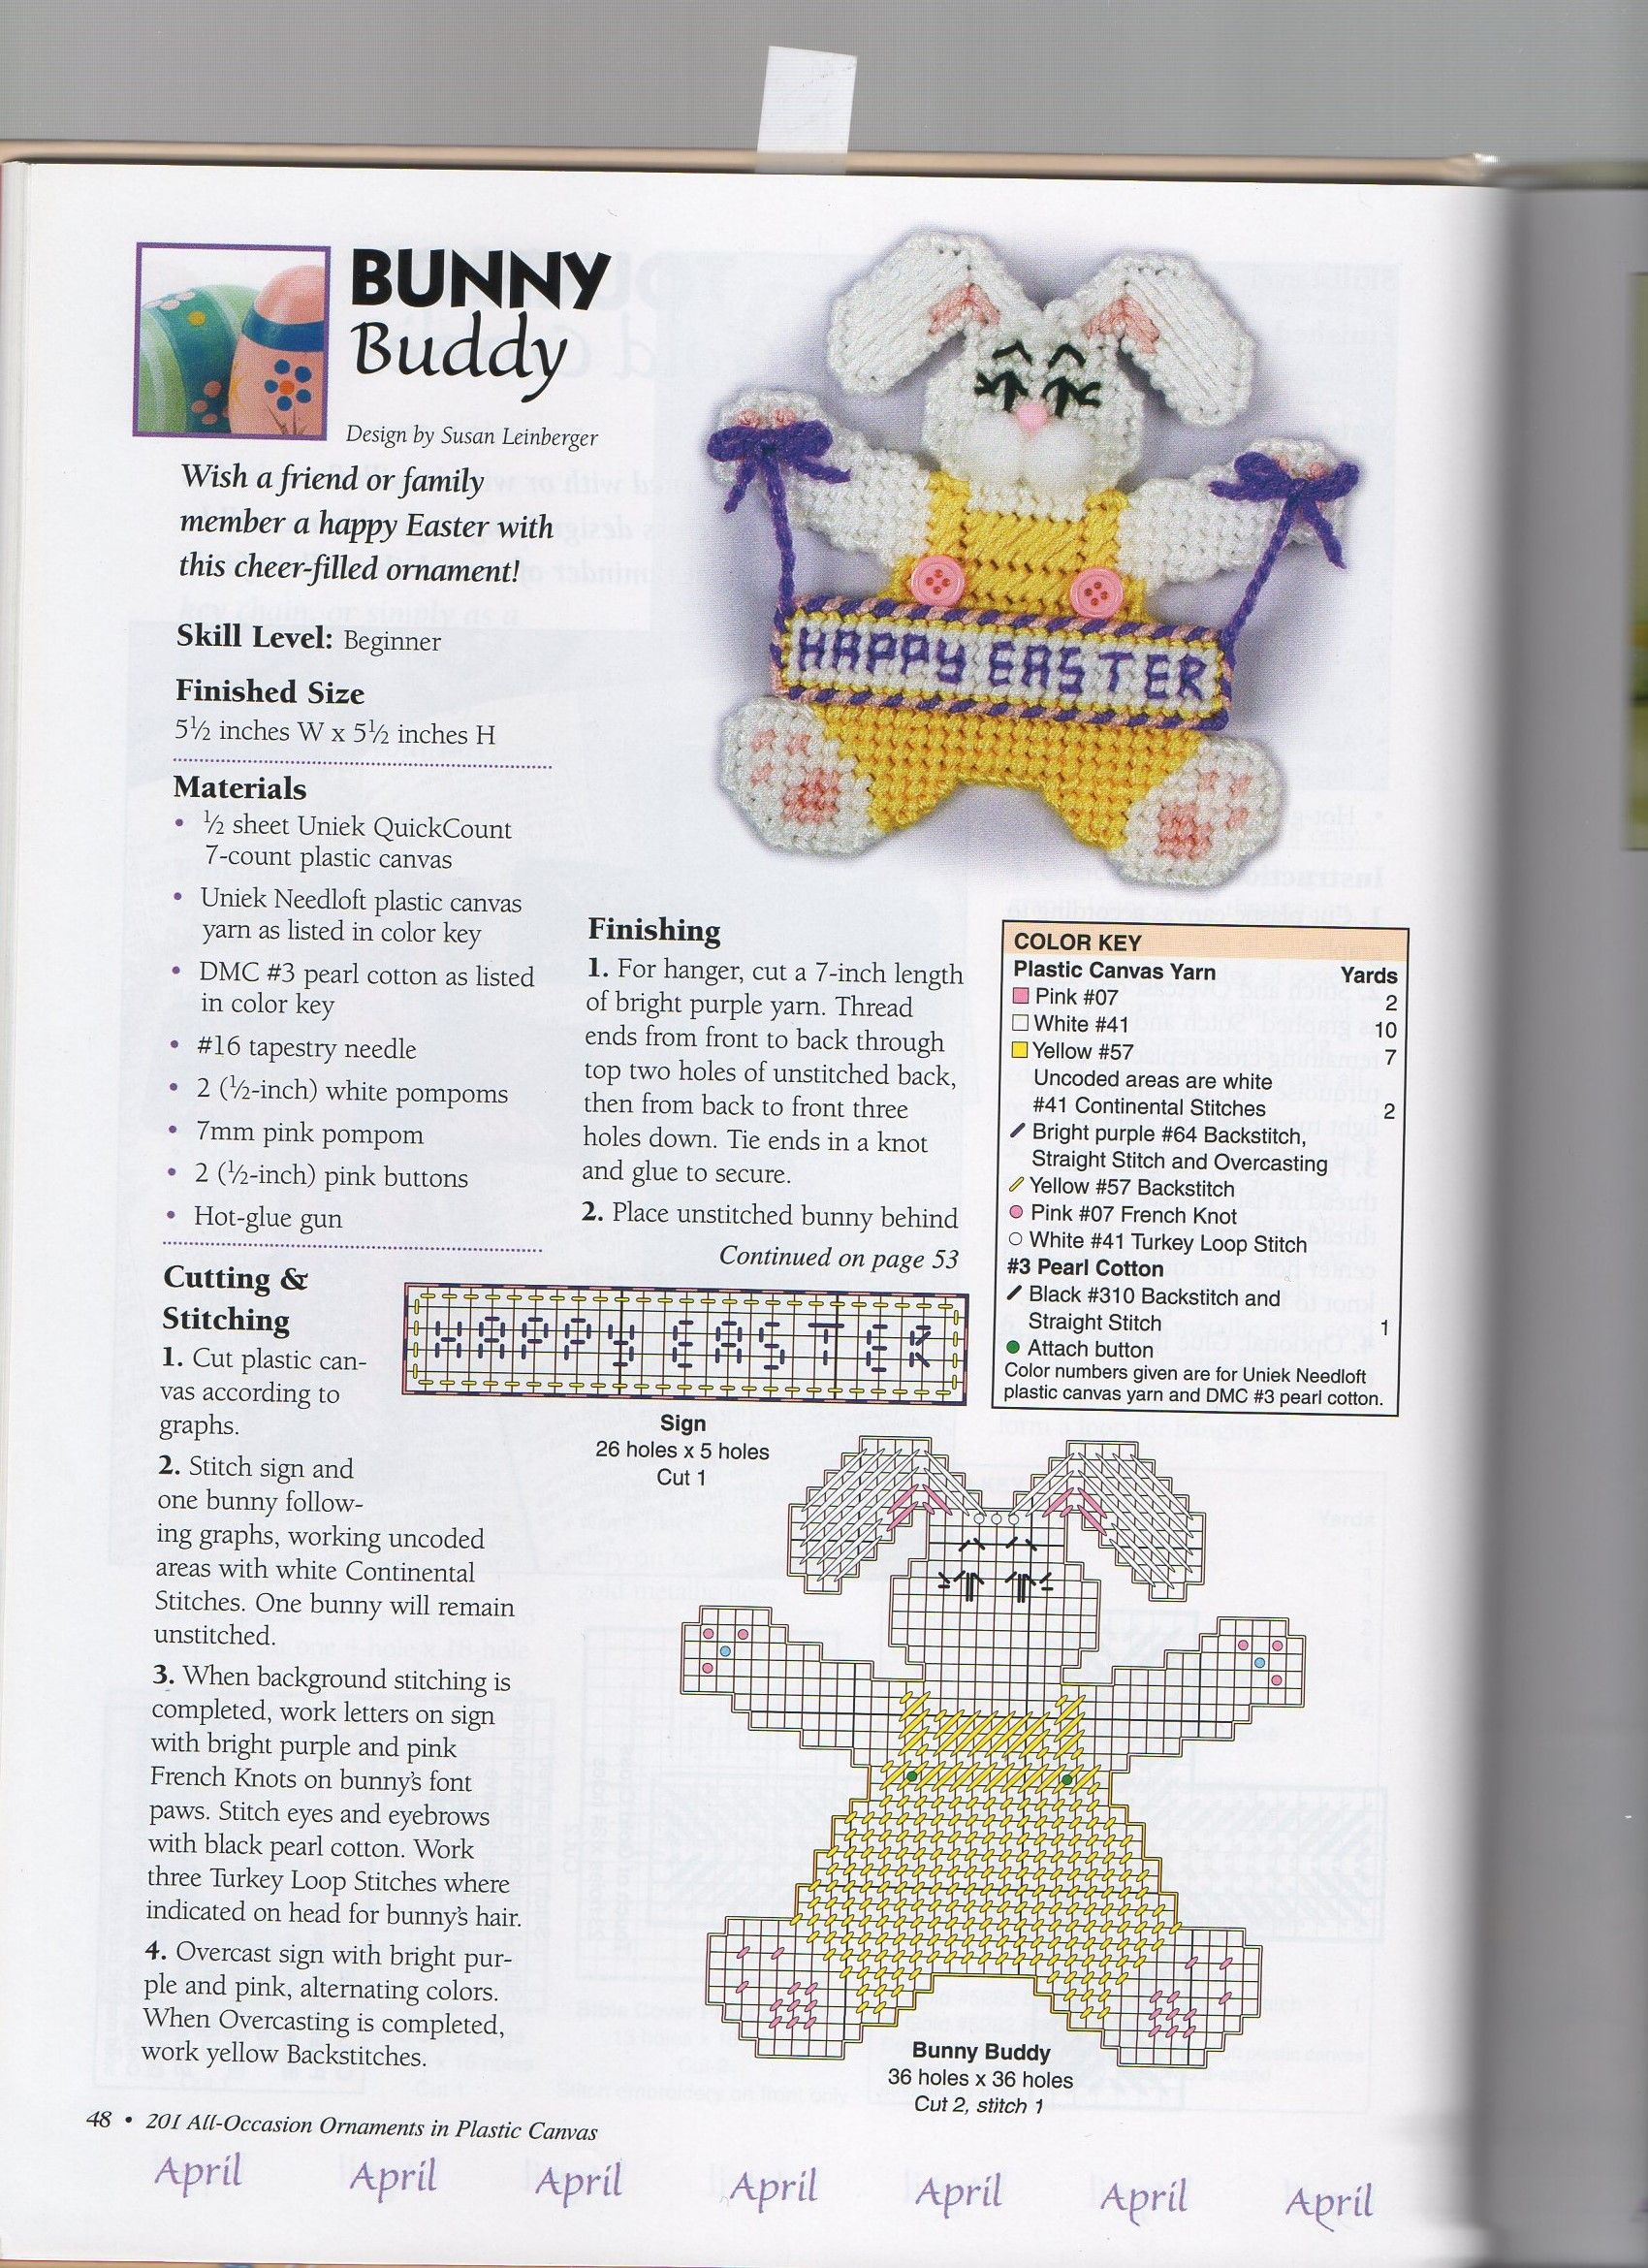 BUNNY BUDDY by SUSAN LEINBERGER 1/2- FROM 201 ALL OCCASION ORNAMENTS IN PLASTIC CANVAS